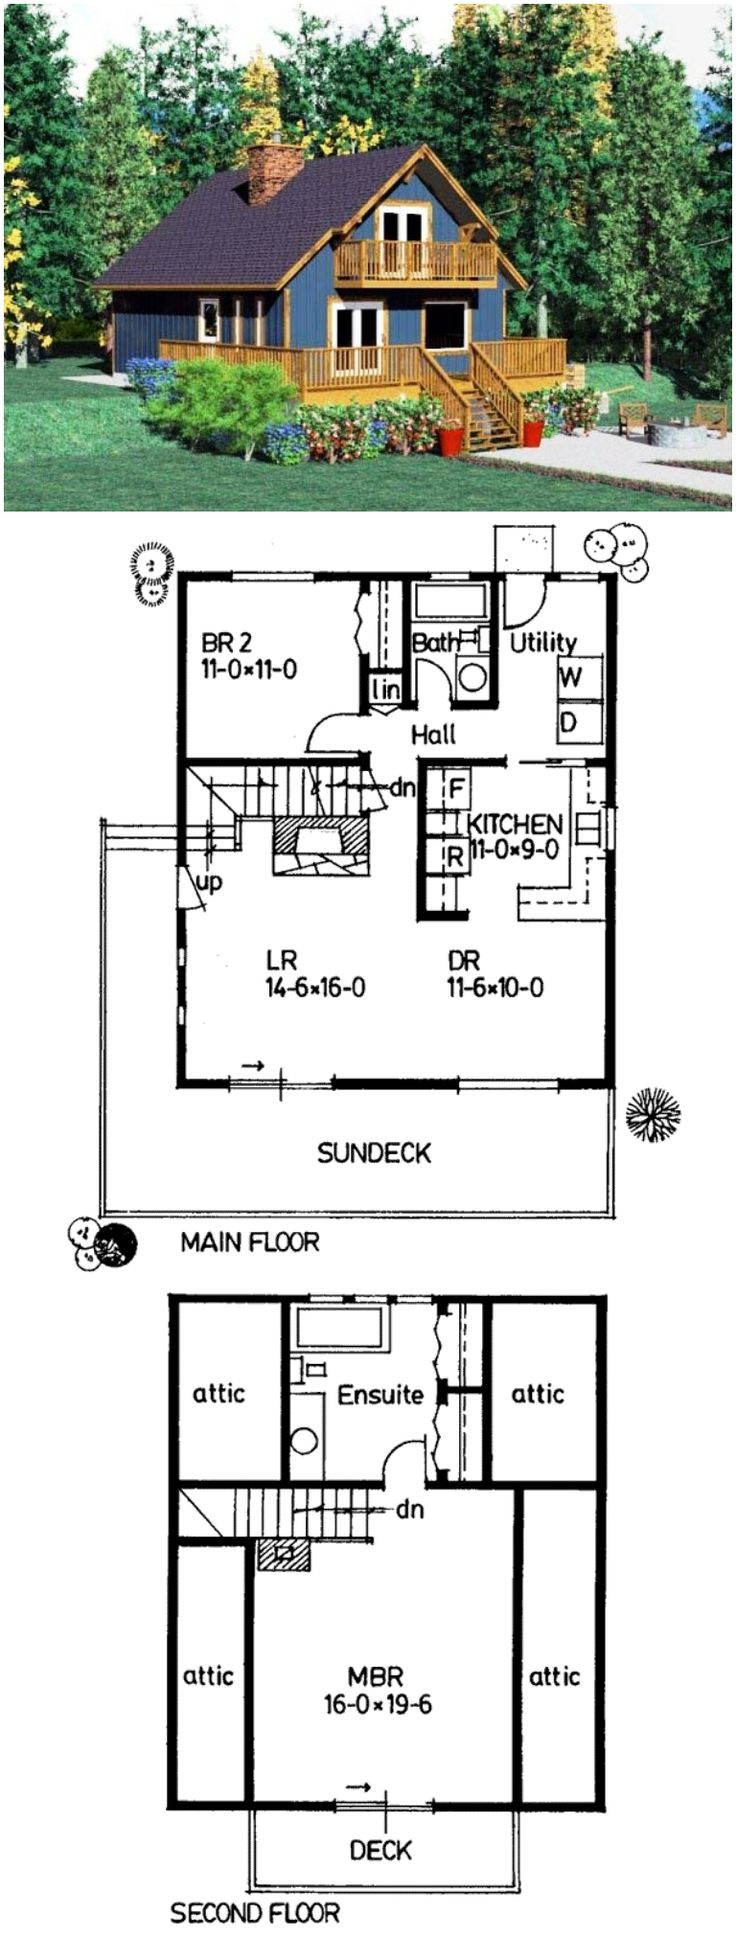 25 best ideas about tiny house plans on pinterest small Small cabin plans